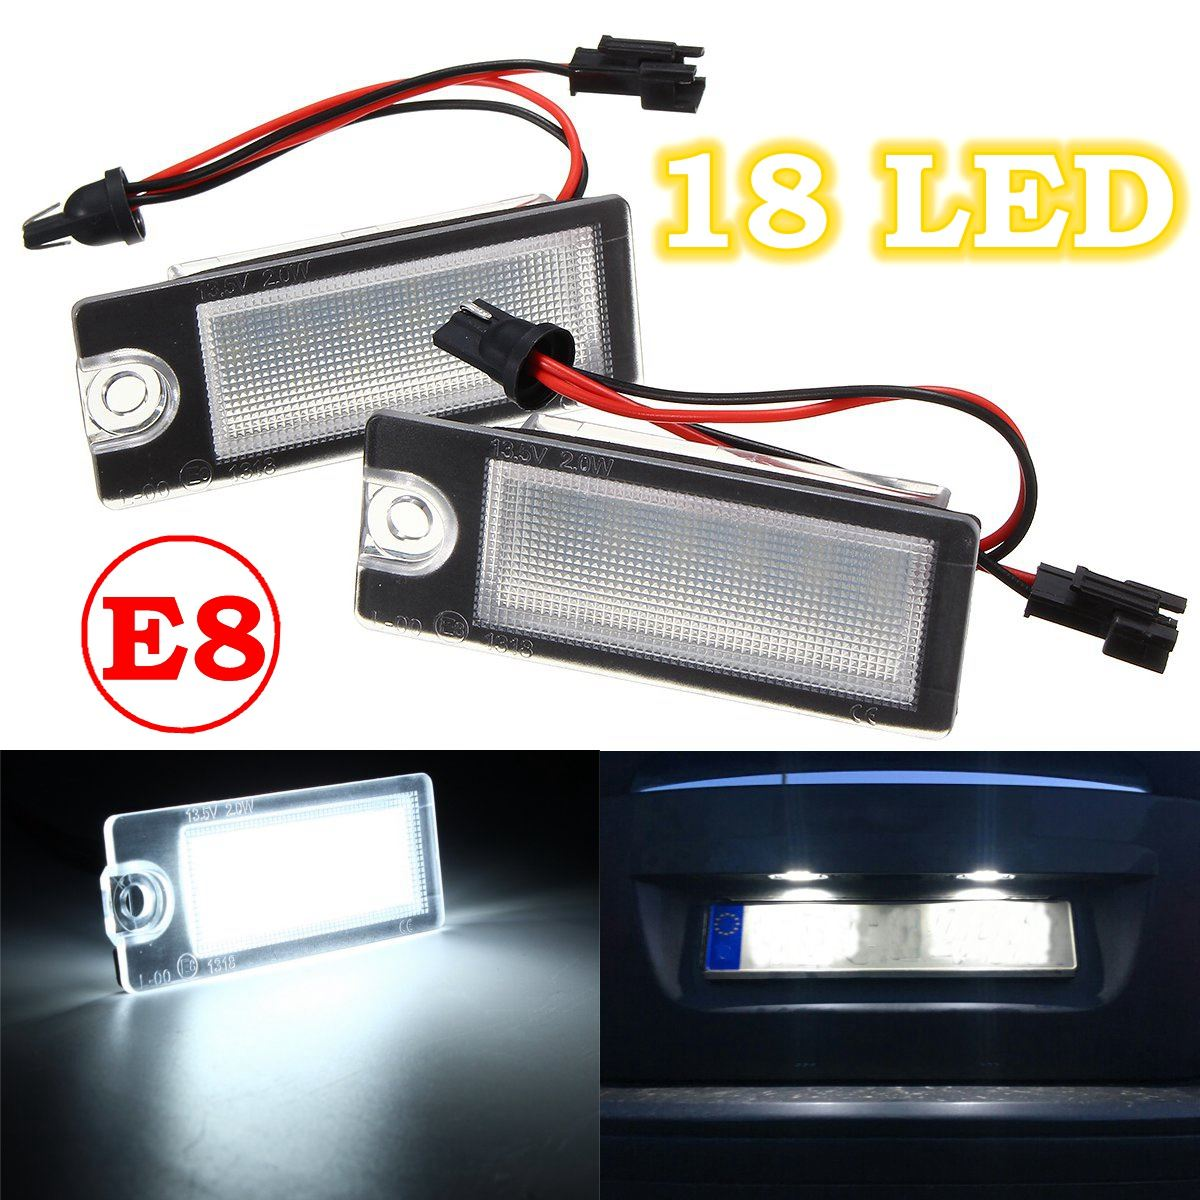 2Pcs Car 18 LED License Plate Light White Number Plate Lamp For Volvo S80 99-06 V70 XC70 S60 XC90 Accessories chic kitchen ceramic knife paring knife chefs knife set w knife holder green 4 pieces